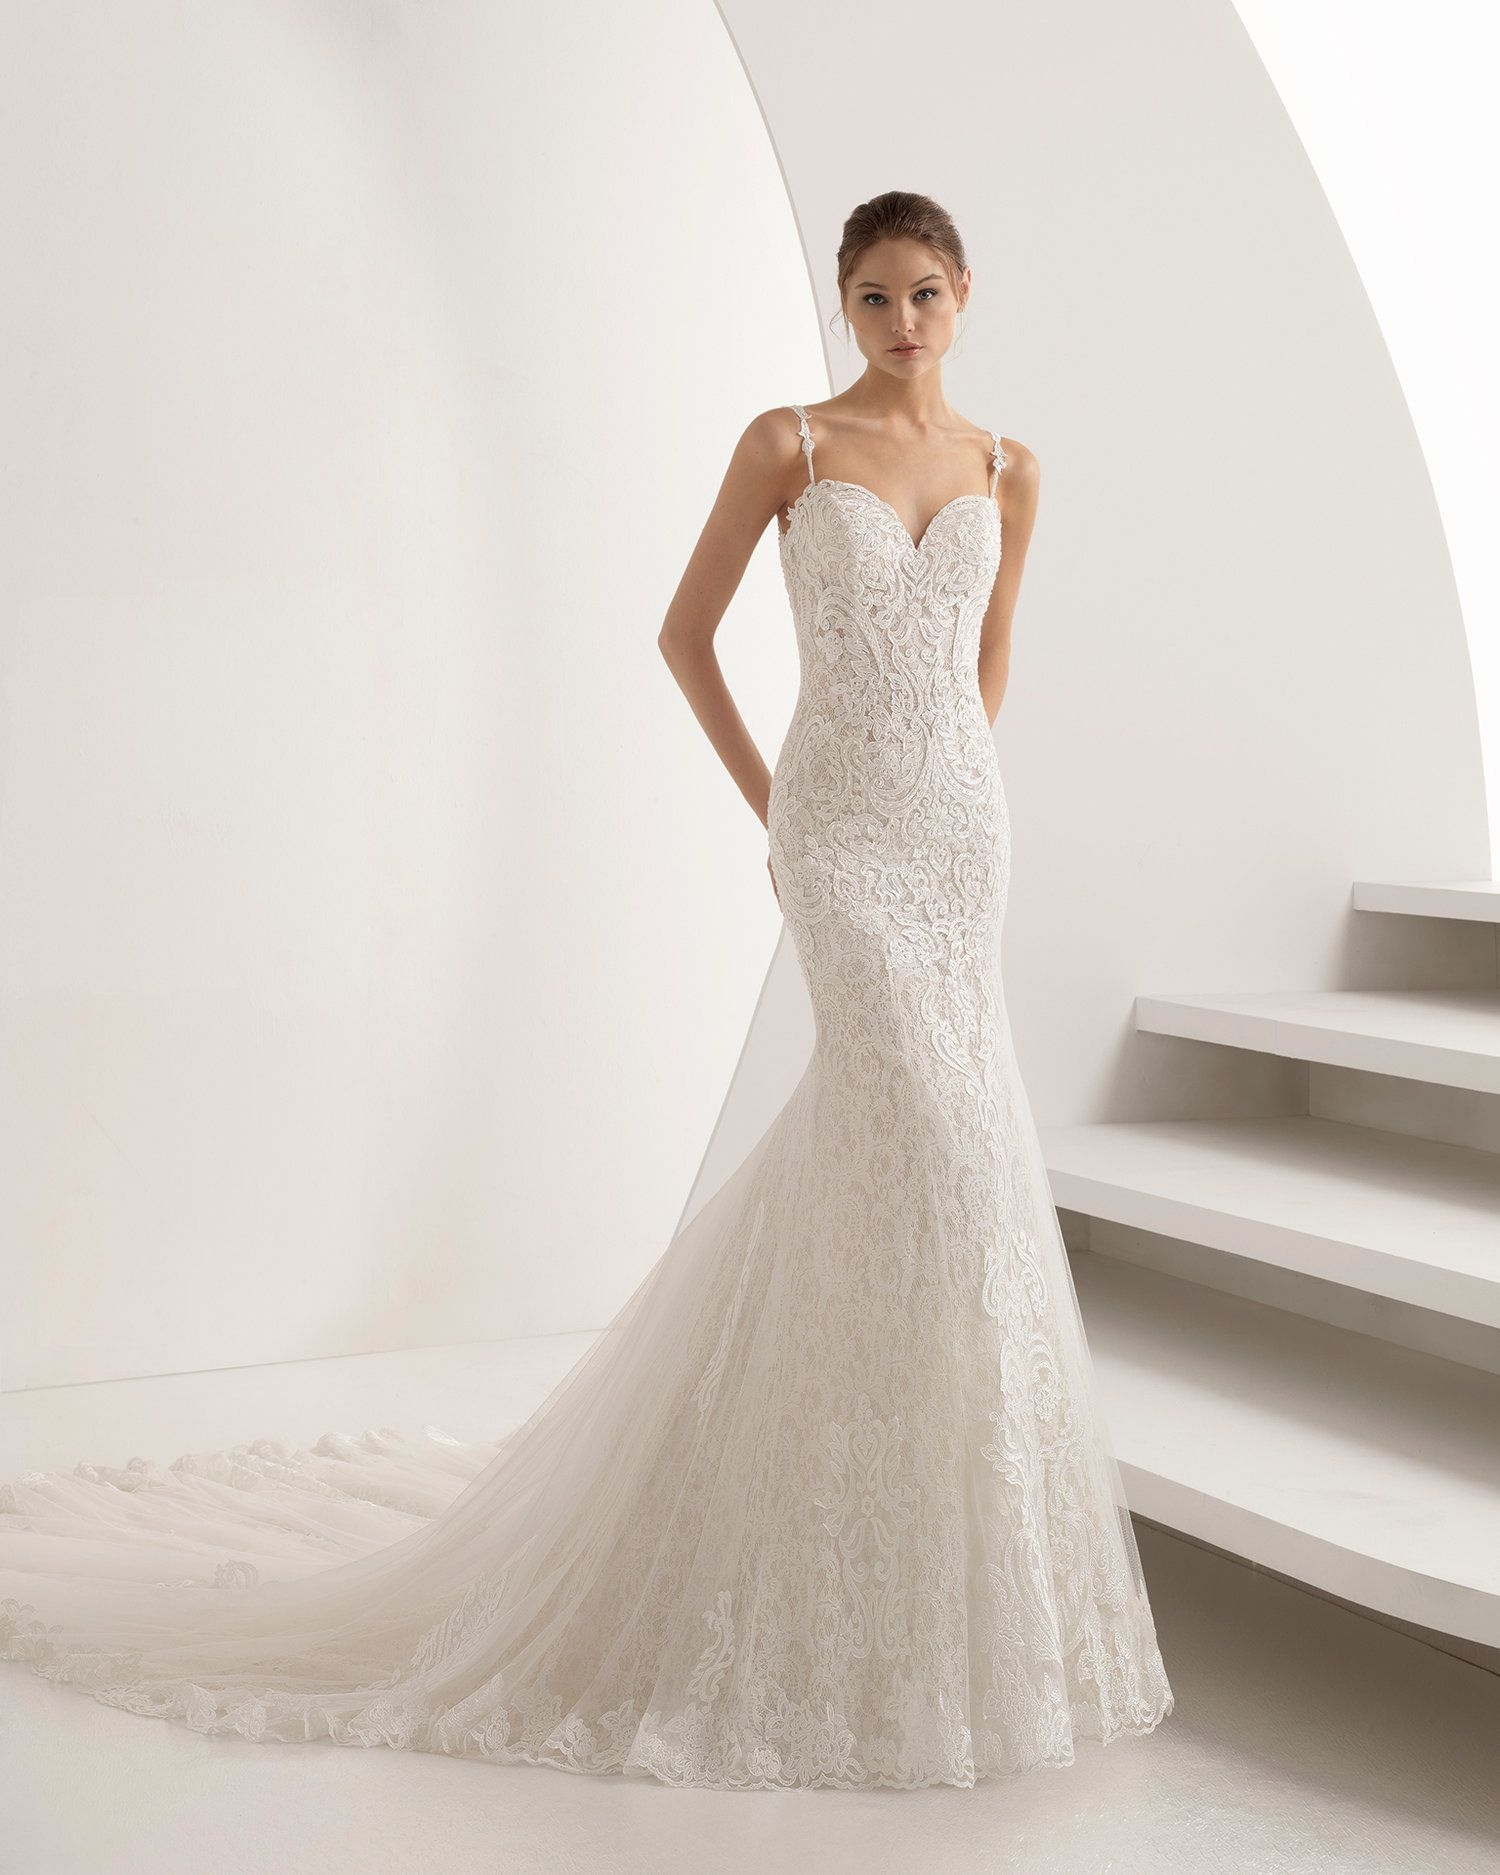 Rosa Clara Indianapolis In Bridal Store Wedding Dresses Marie Gabriel Couture In 2020 Bridal Dress Stores Wedding Dresses Second Wedding Dresses